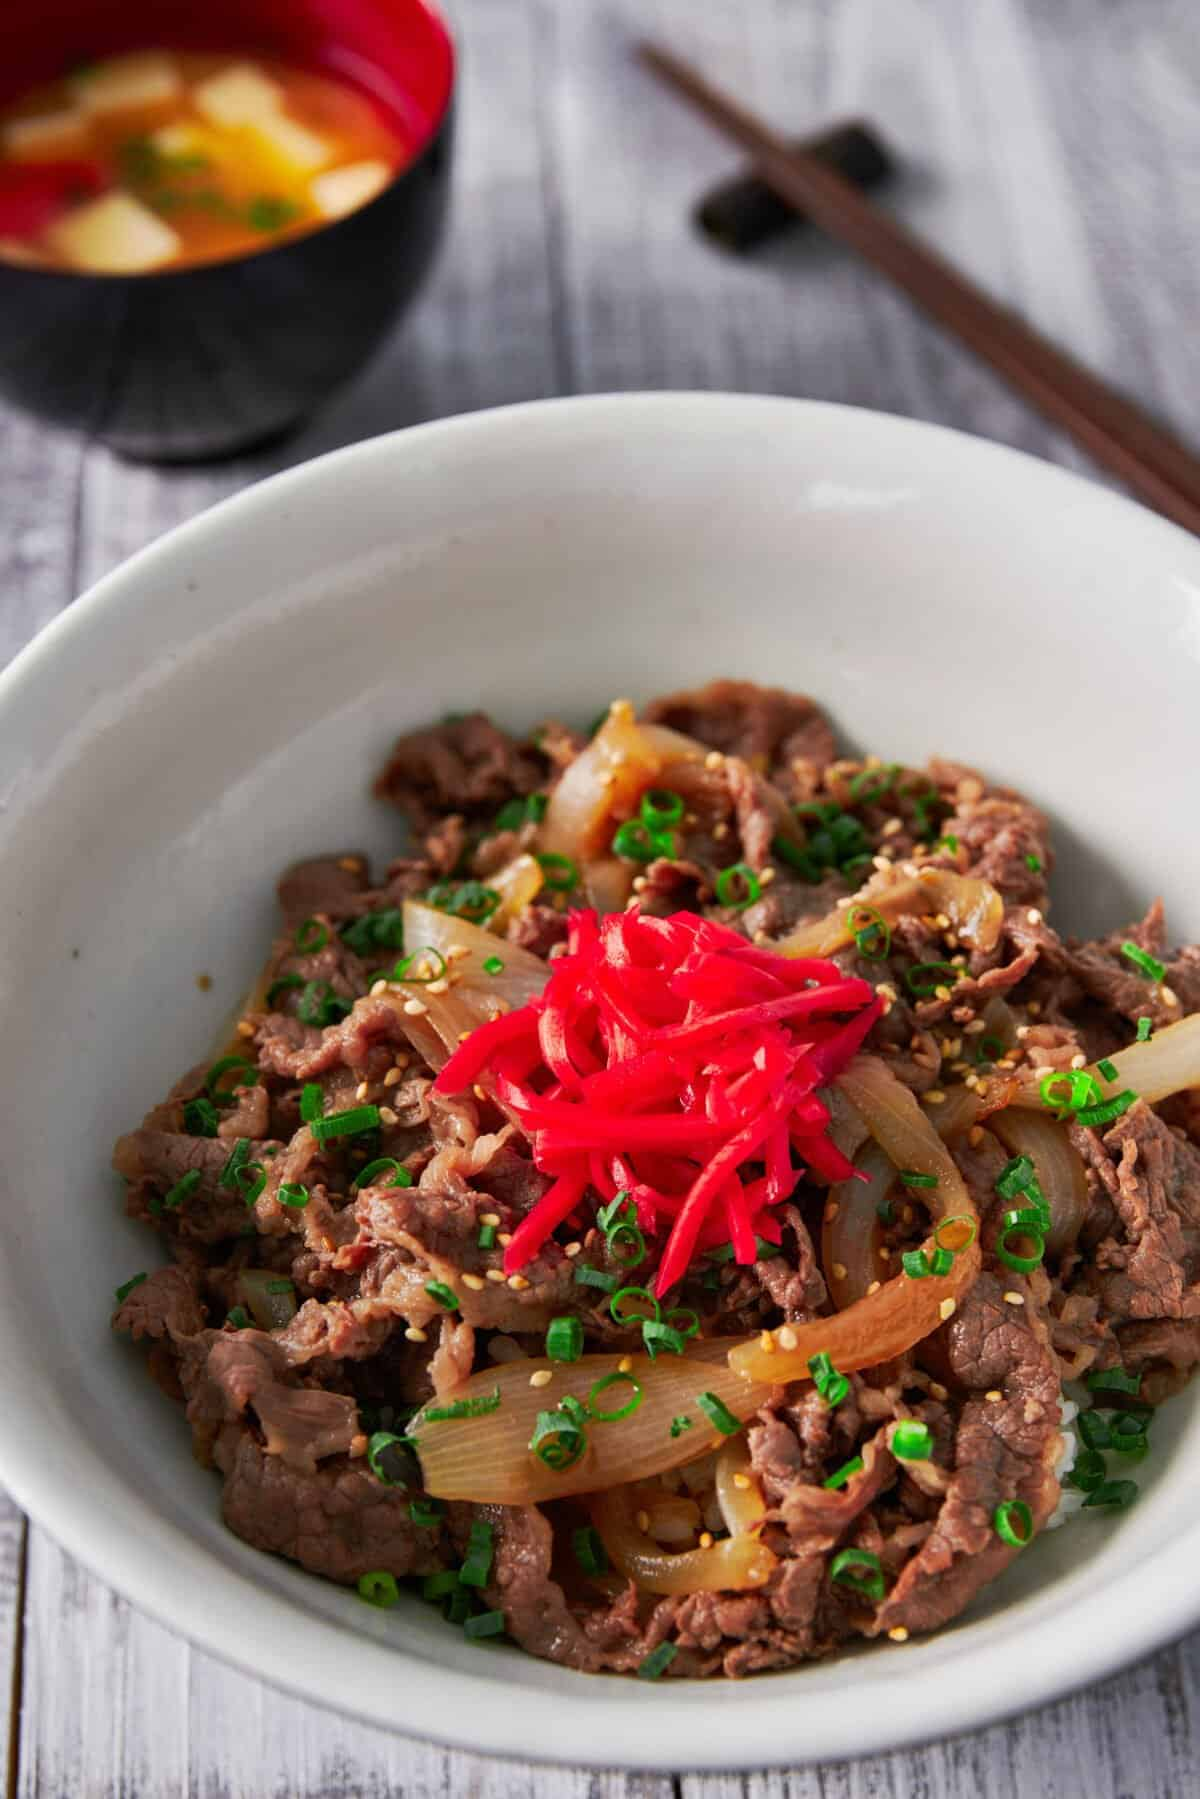 Gyudon (Beef and Bowl), is a classic Japanese dish made with beef and onions that have been simmered in a sweet and savory broth. Served over rice, this easy, satisfying meal comes together in under 15 minutes.